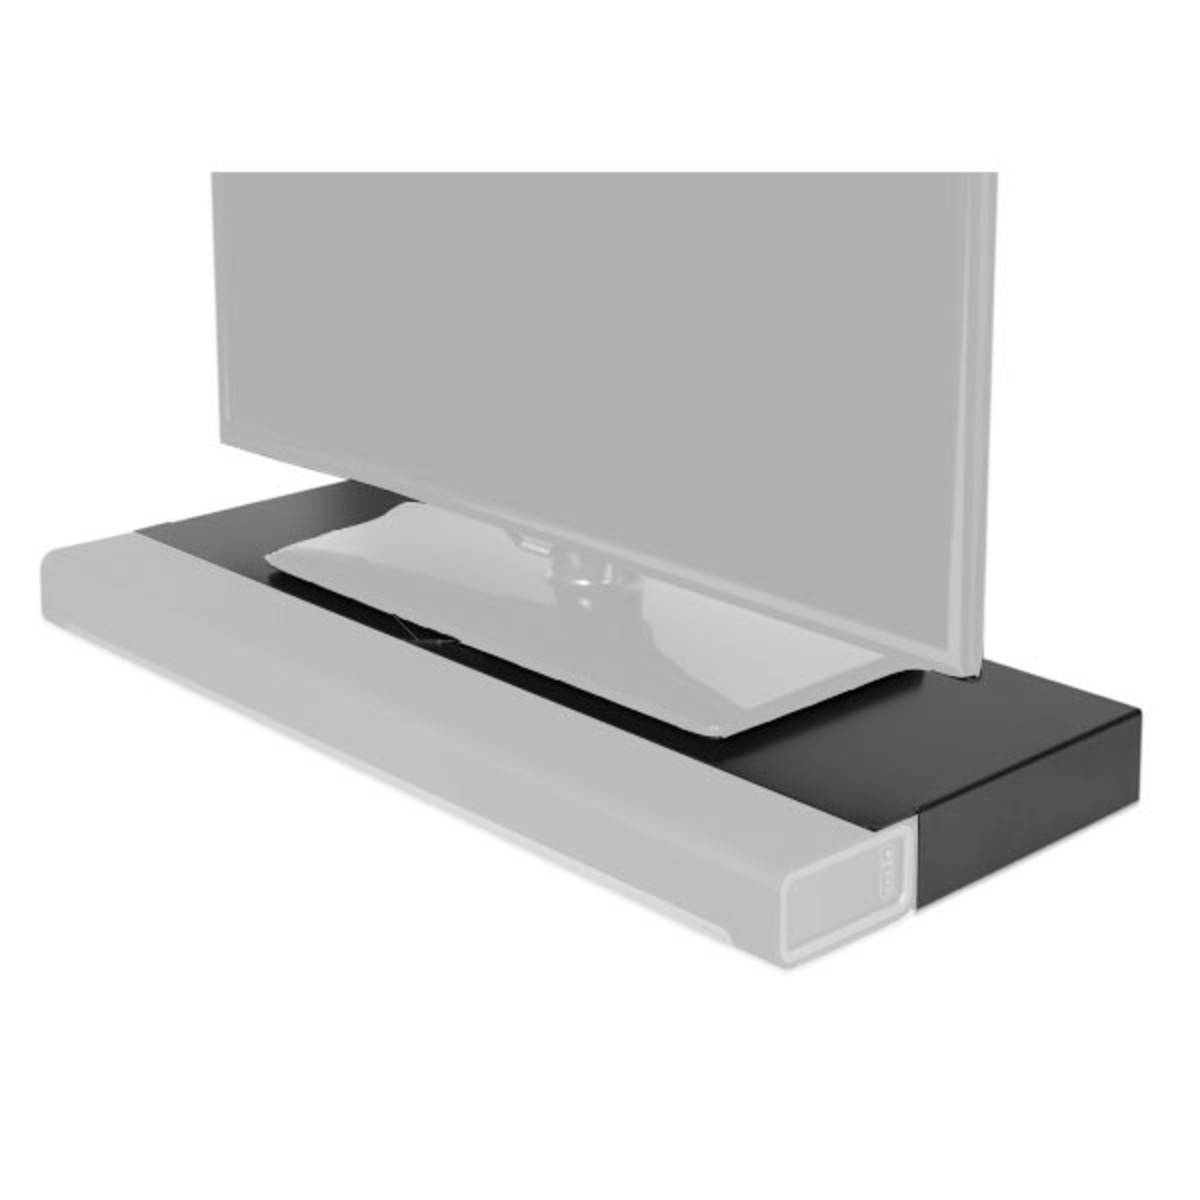 Flexson Tv Stand For Sonos Playbar, Black At Gear4Music Pertaining To Sonos Tv Stands (View 7 of 15)